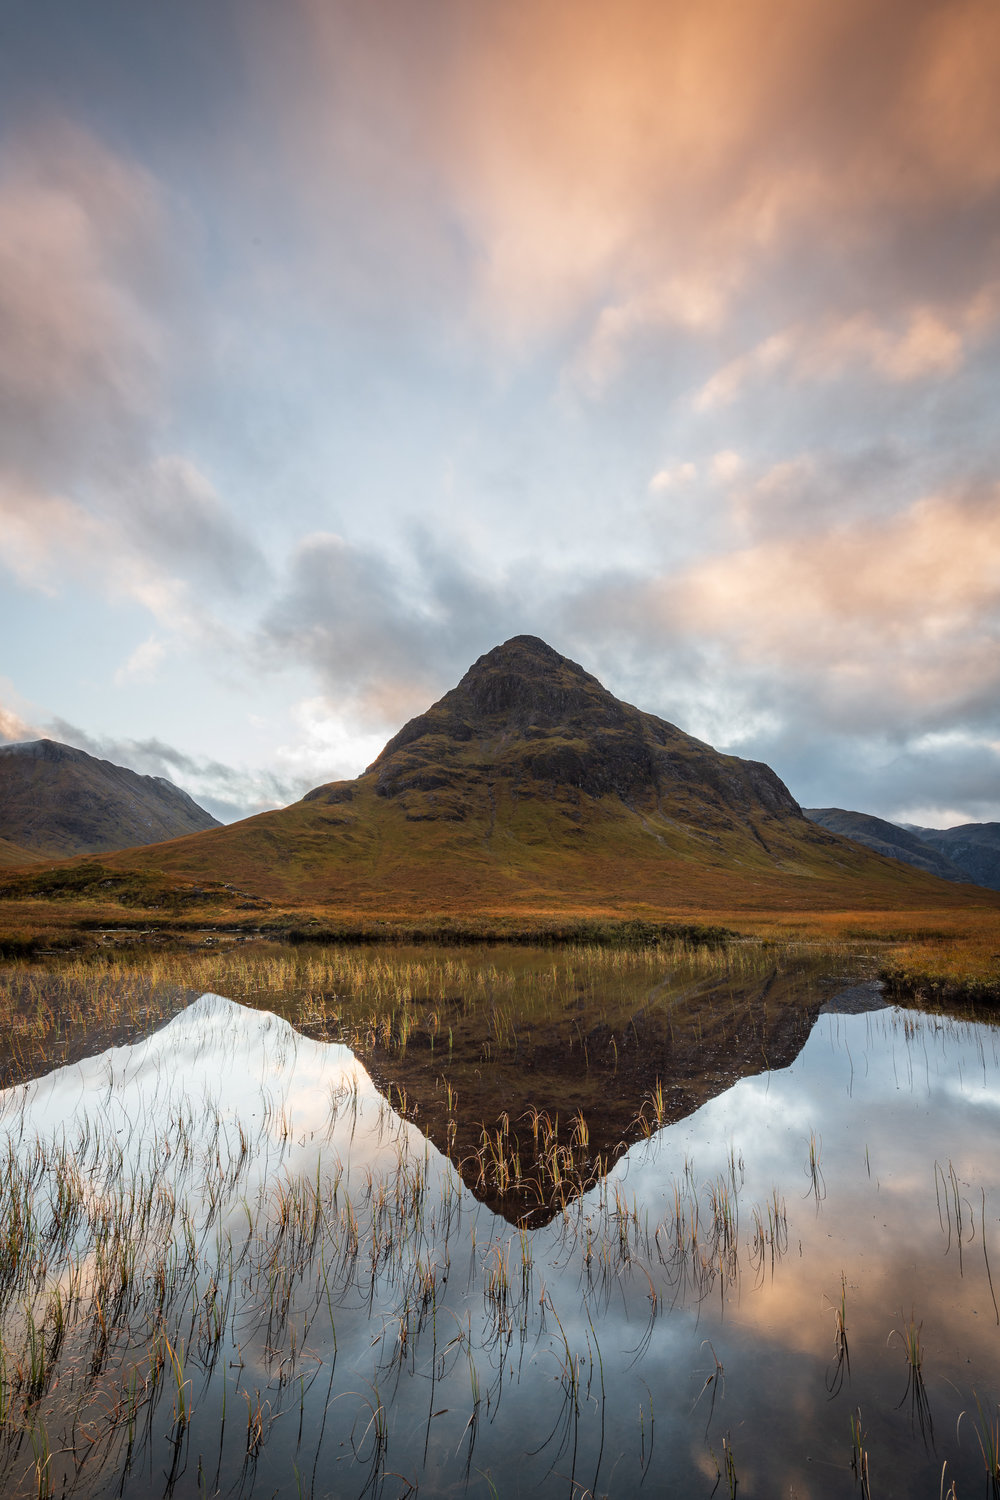 Stob nan Cabar from Lochan na Fola (Vertical), Glencoe, Scotland  - Nikon D850, Nikkor 16-35 mm f/4 at 16 mm, 0.8 seconds at ISO 64, f/13, Lee Filters Circular Polariser, ND Grad.